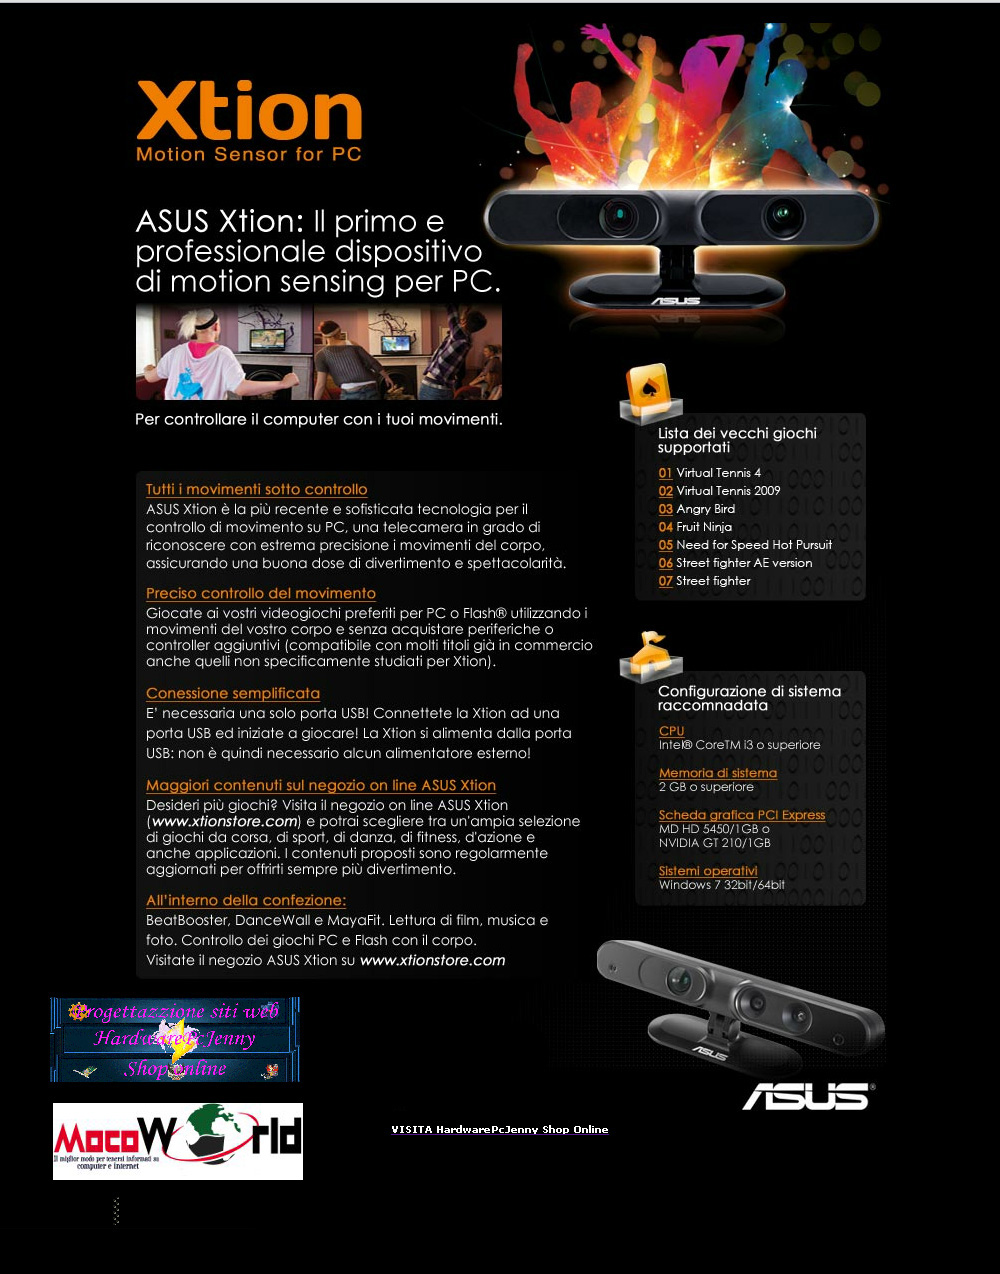 Motion Sensor Xtion by Asus